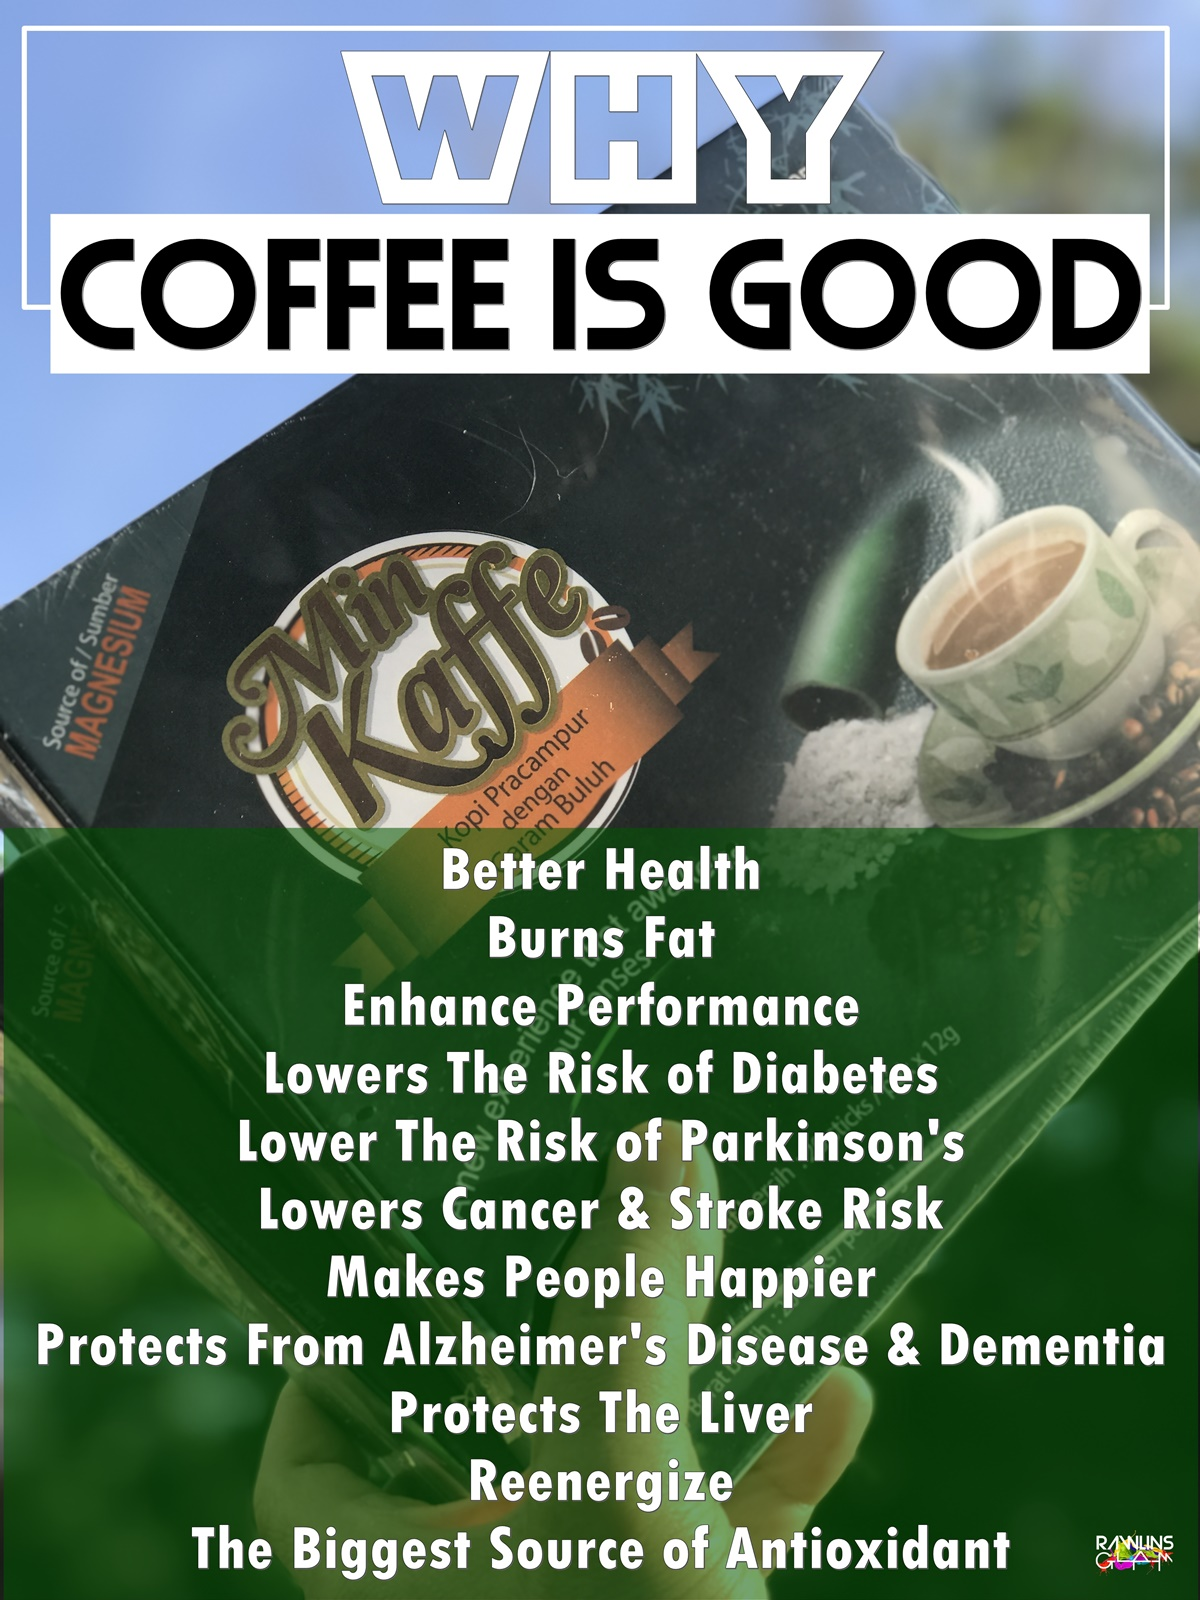 Min Kaffe, Antioxidants, Alzheimer' Disease, Happy People, Coffee Prevents Cancer, Min Kaffe Lowers Diabeter, Min Kaffe Untuk Kurus, Set Kurus Bajet, Rawlins GLAM, byrawlins, Hanis Haizi Protege